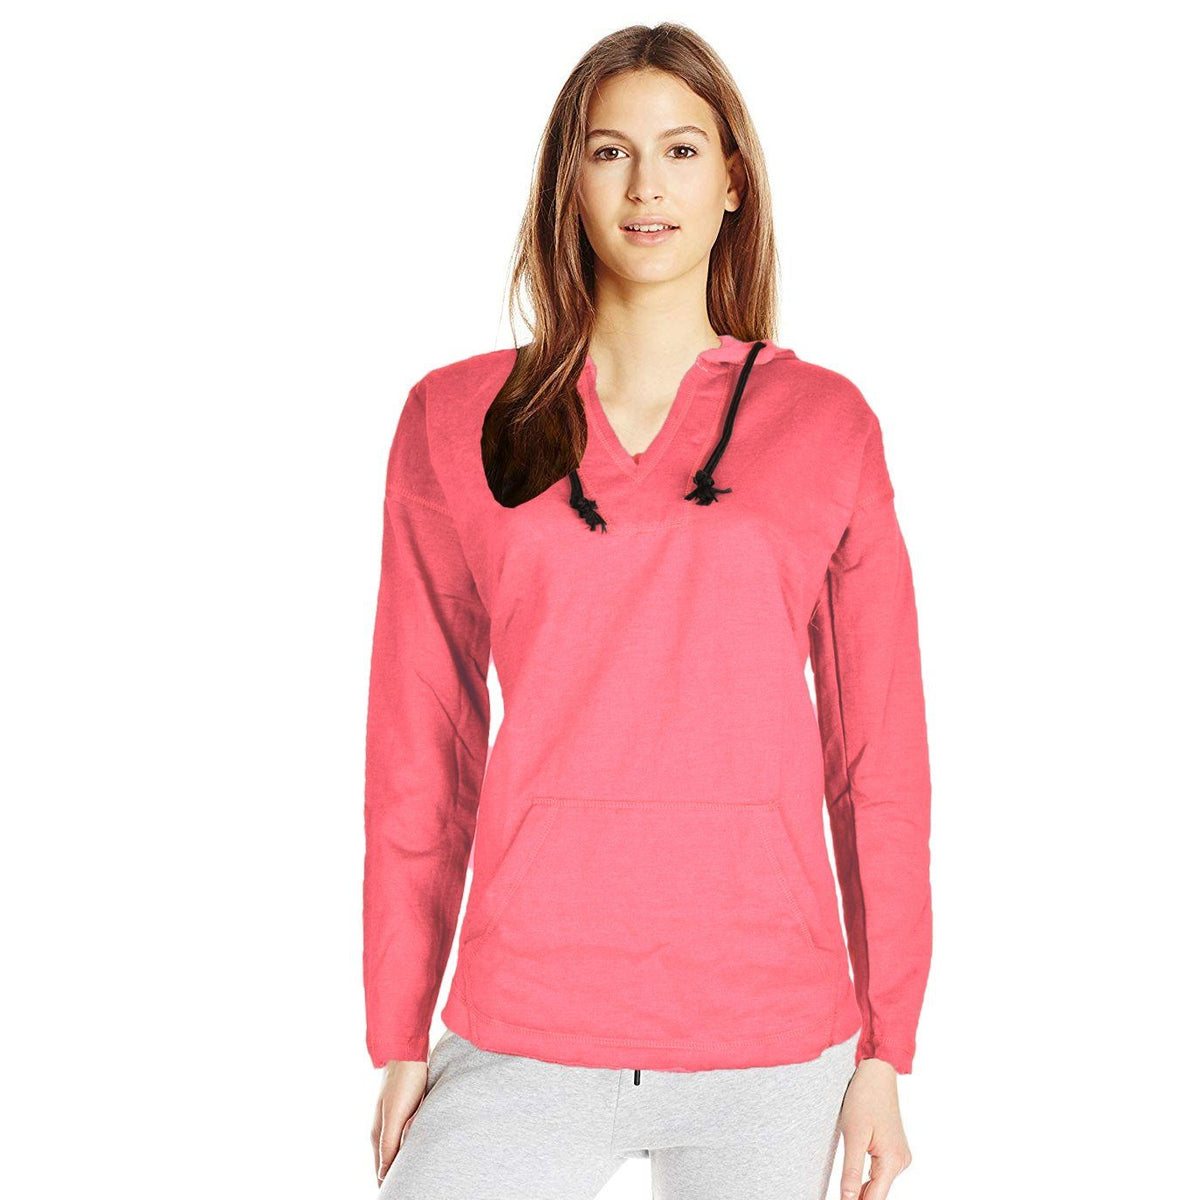 J4W Women's Chic V-Neck Cropped Hoodie Women's Pullover Hoodie SRK Peach M